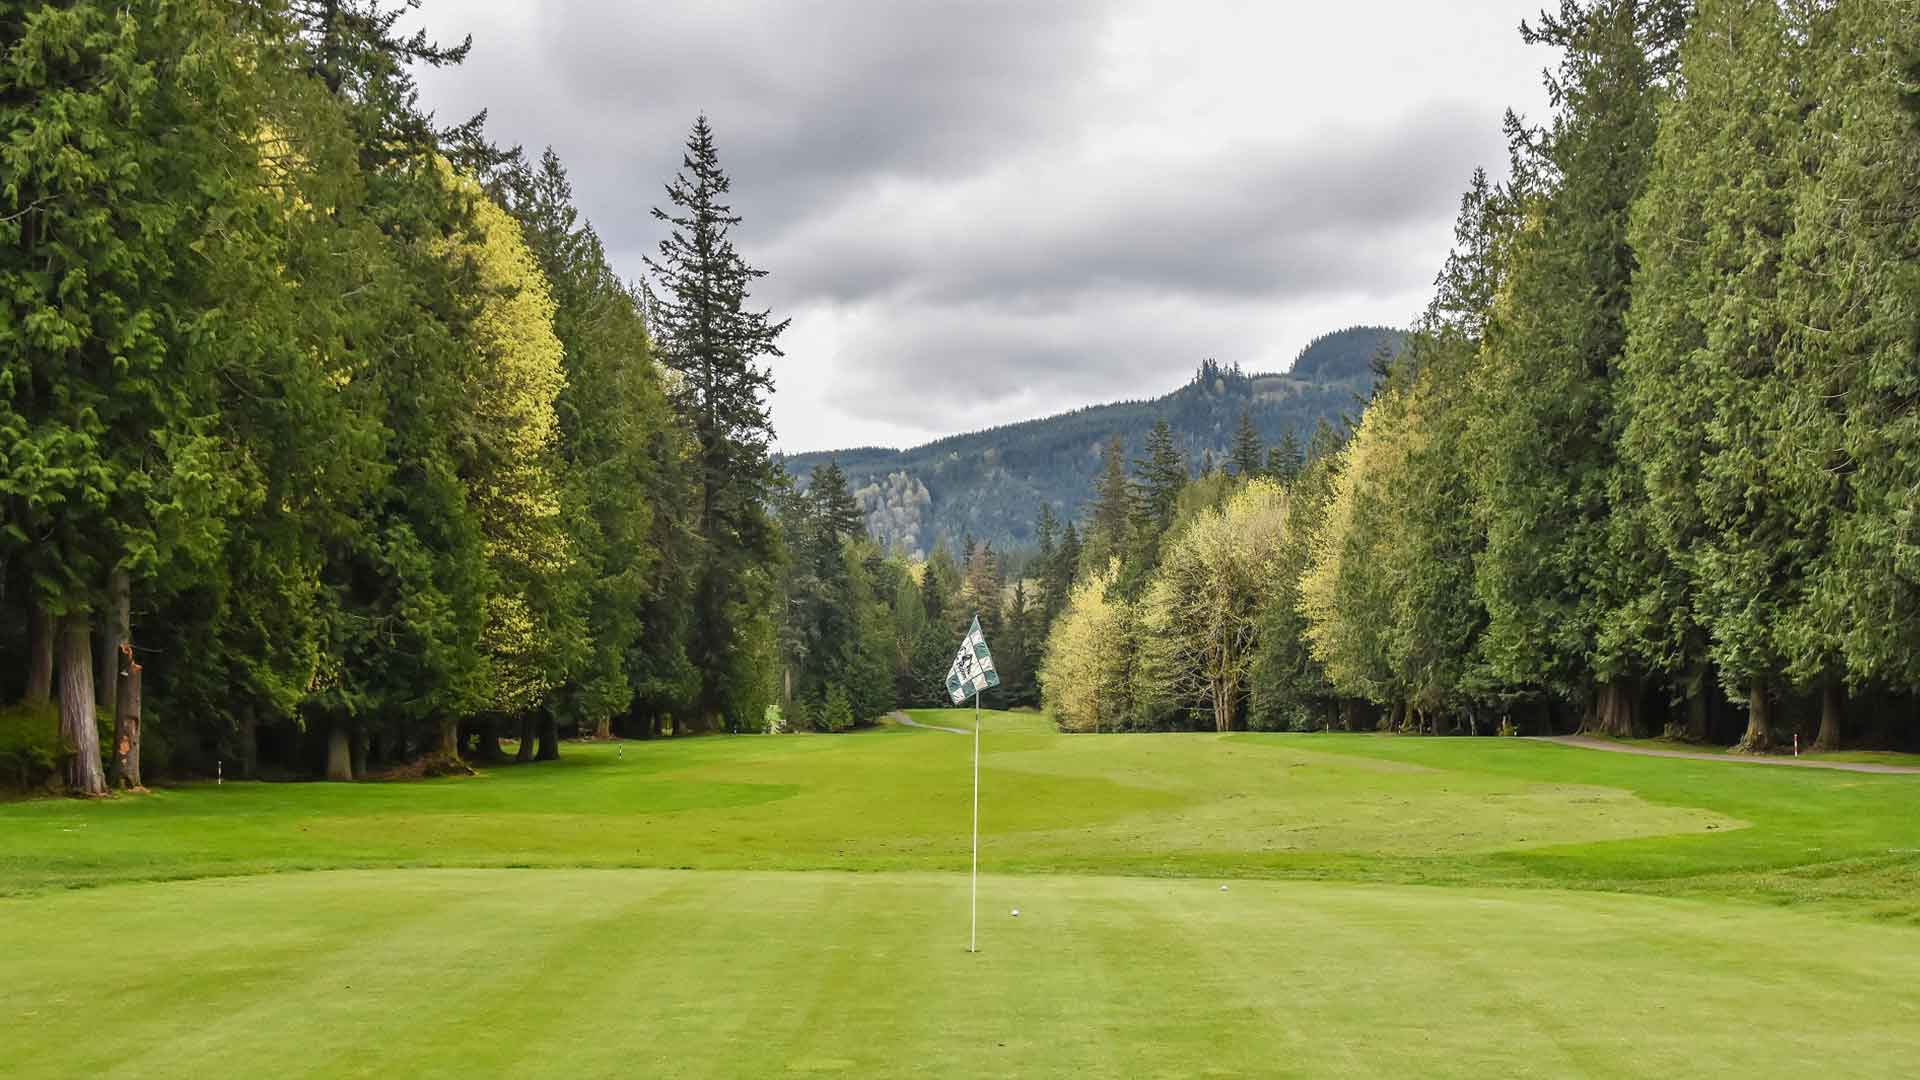 Lake Padden Golf Course Daily Deal Tee Times